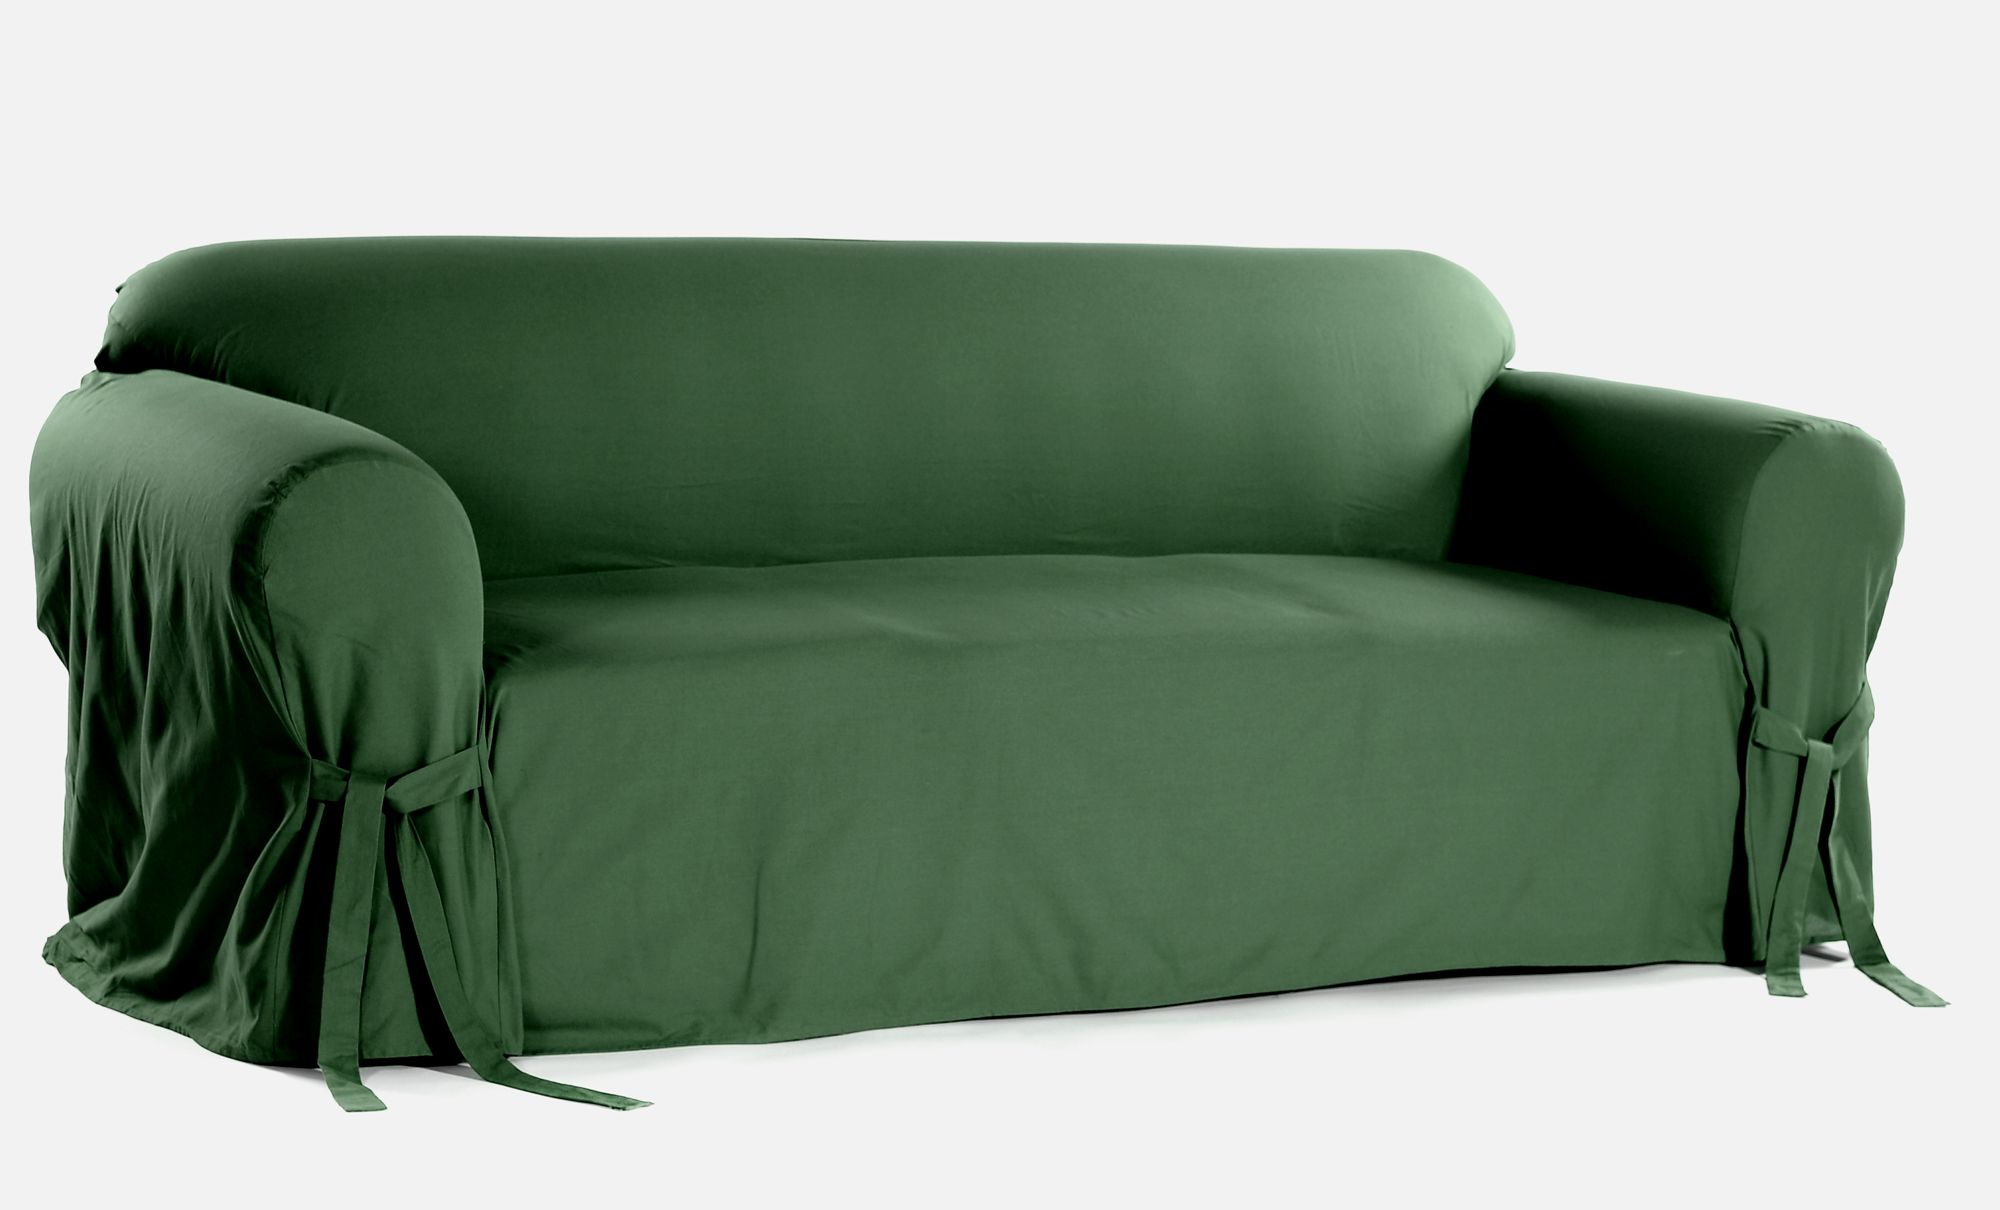 Classic Slipcovers Cotton Duck one piece loveseat slipcover Green